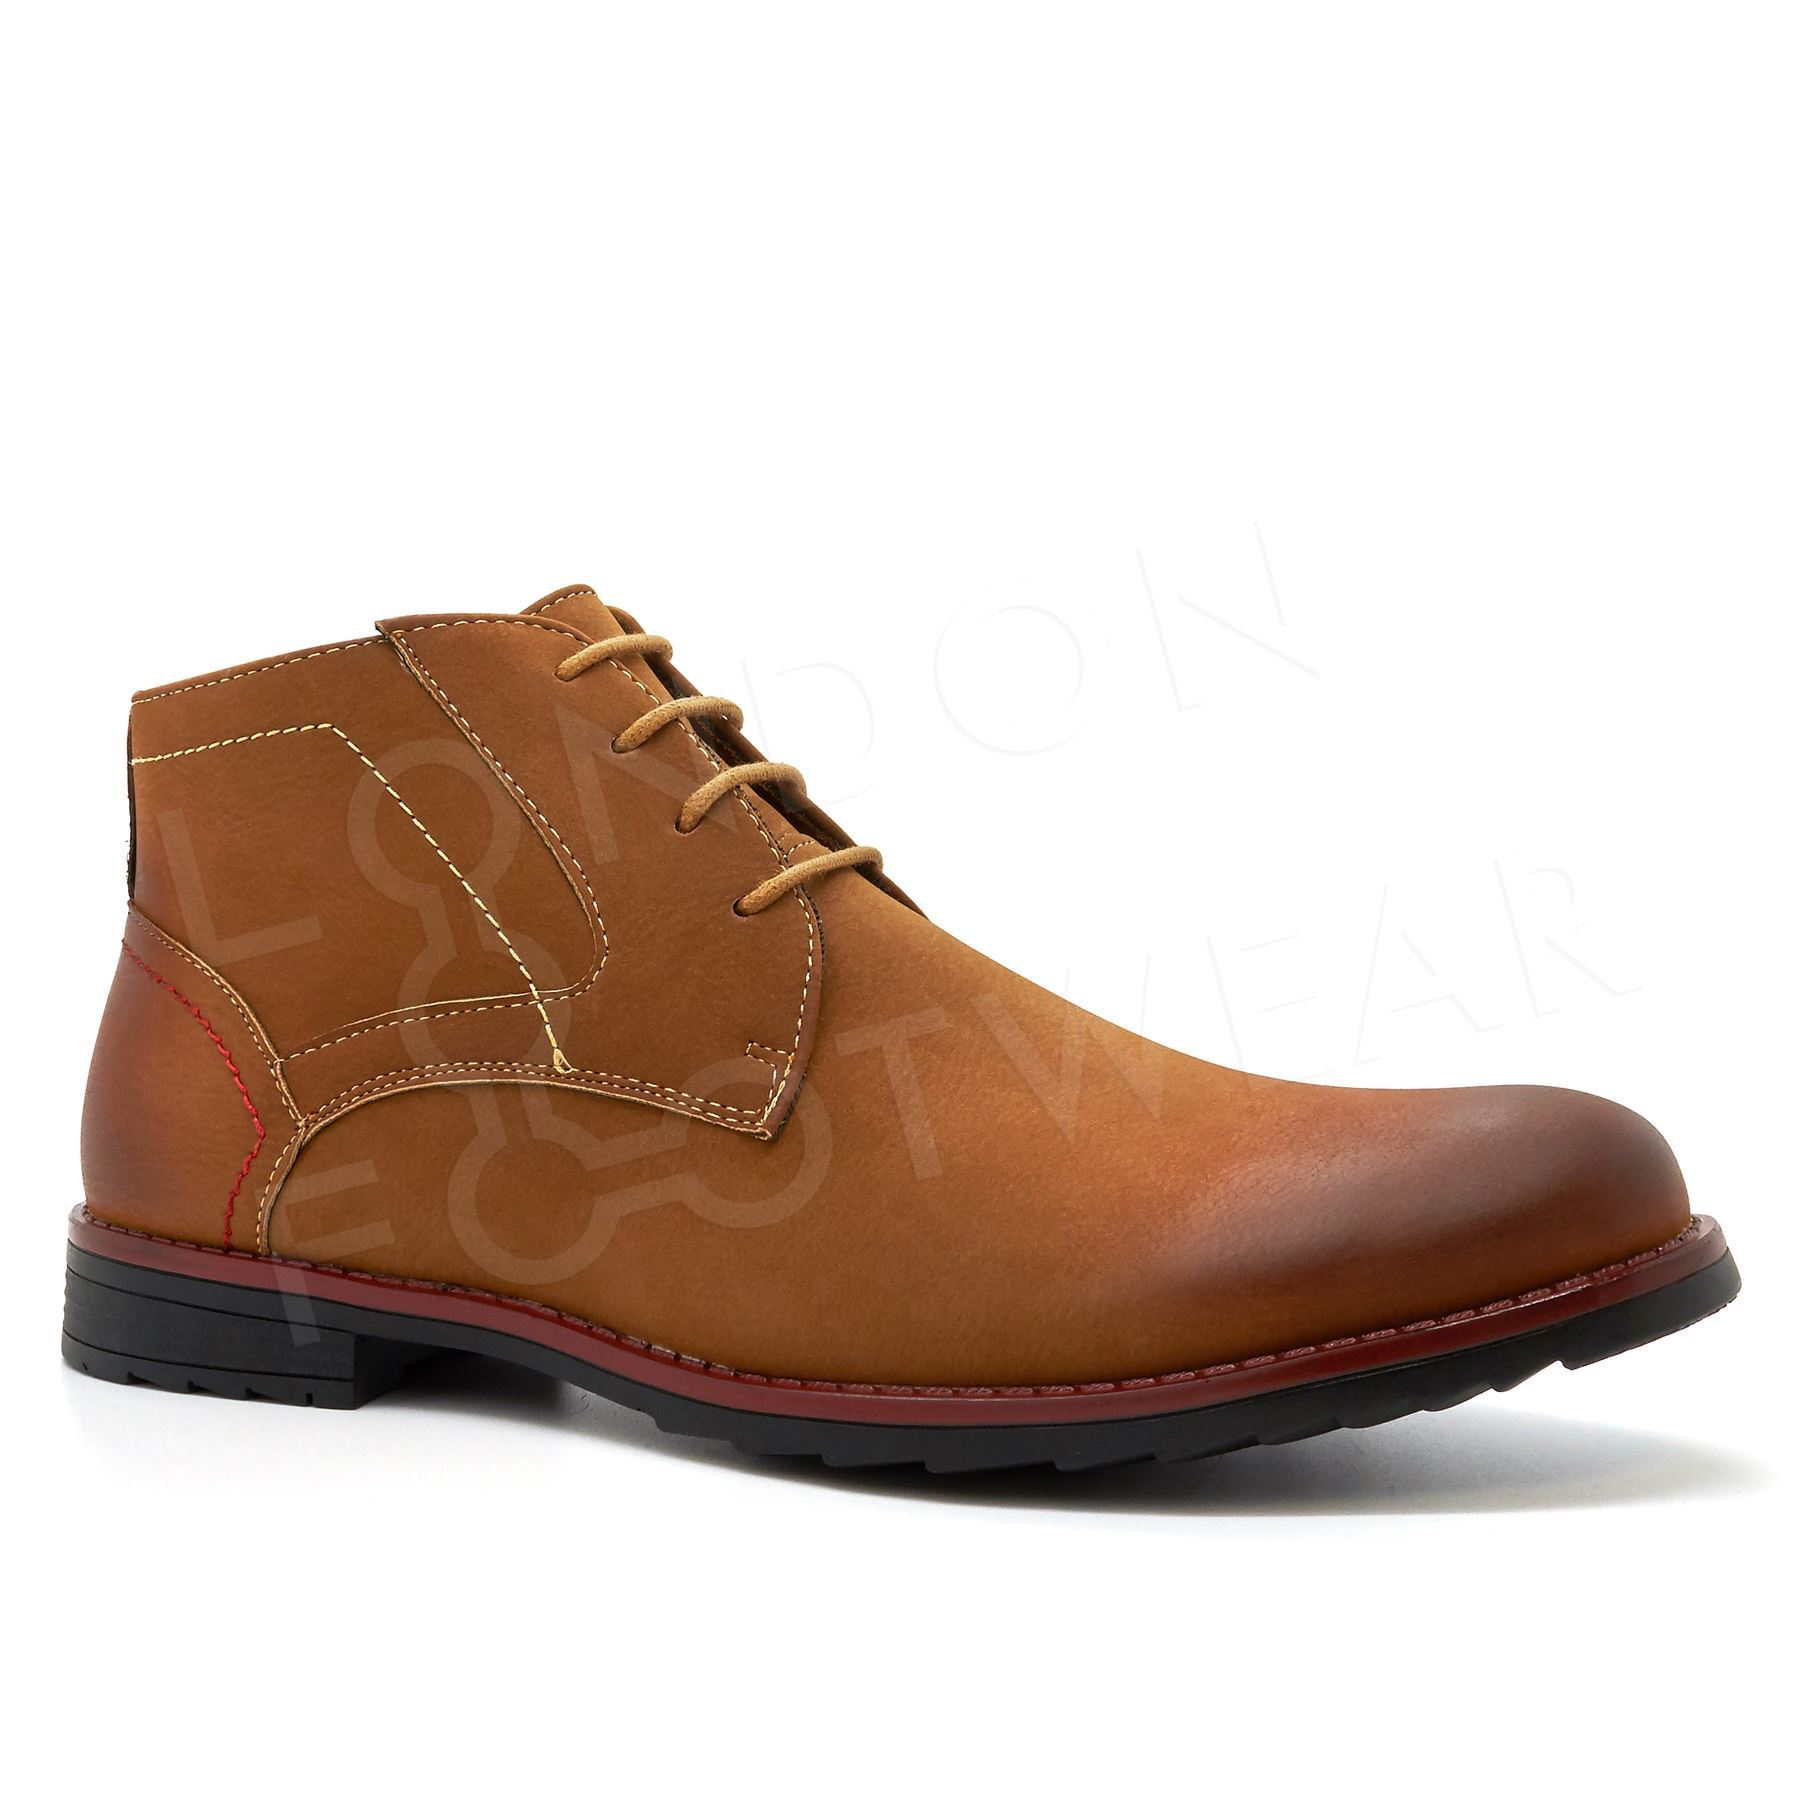 new mens casual formal chukka desert ankle lace up leather boots shoes size 6 11 ebay. Black Bedroom Furniture Sets. Home Design Ideas